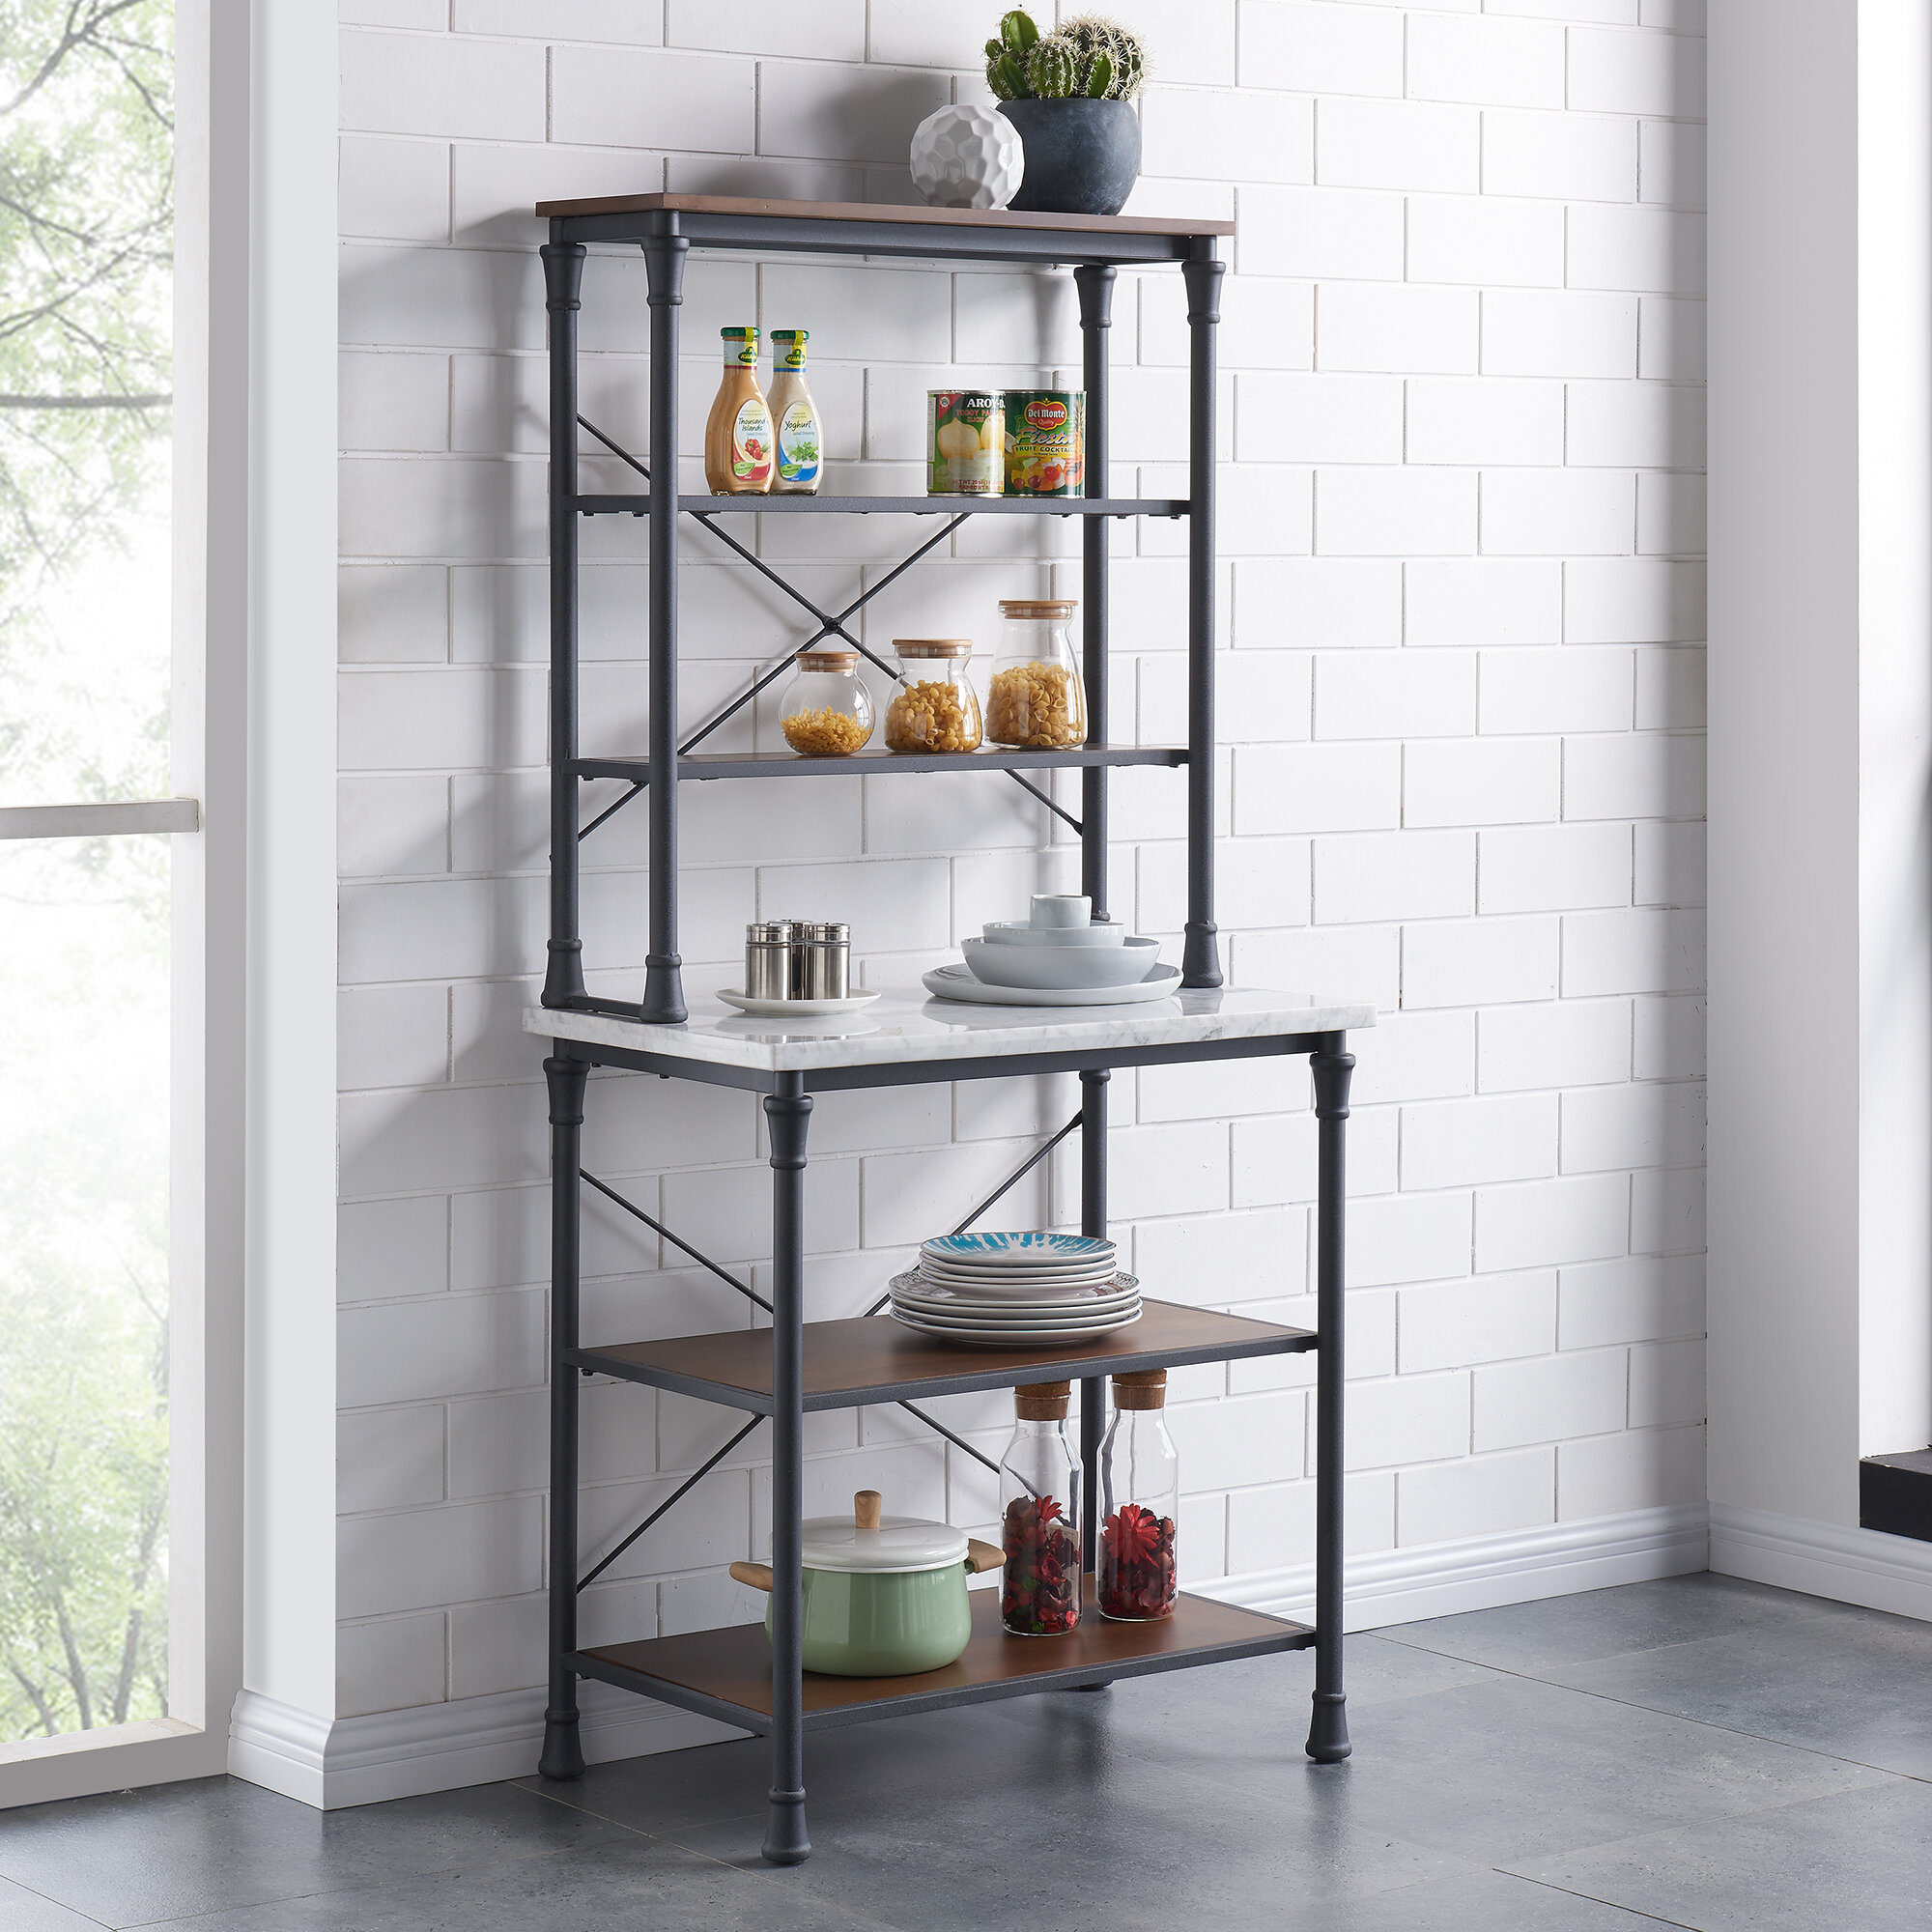 cramco b dining bakers espresso room s furniture inc and wolf by rack products gardiner racks baker